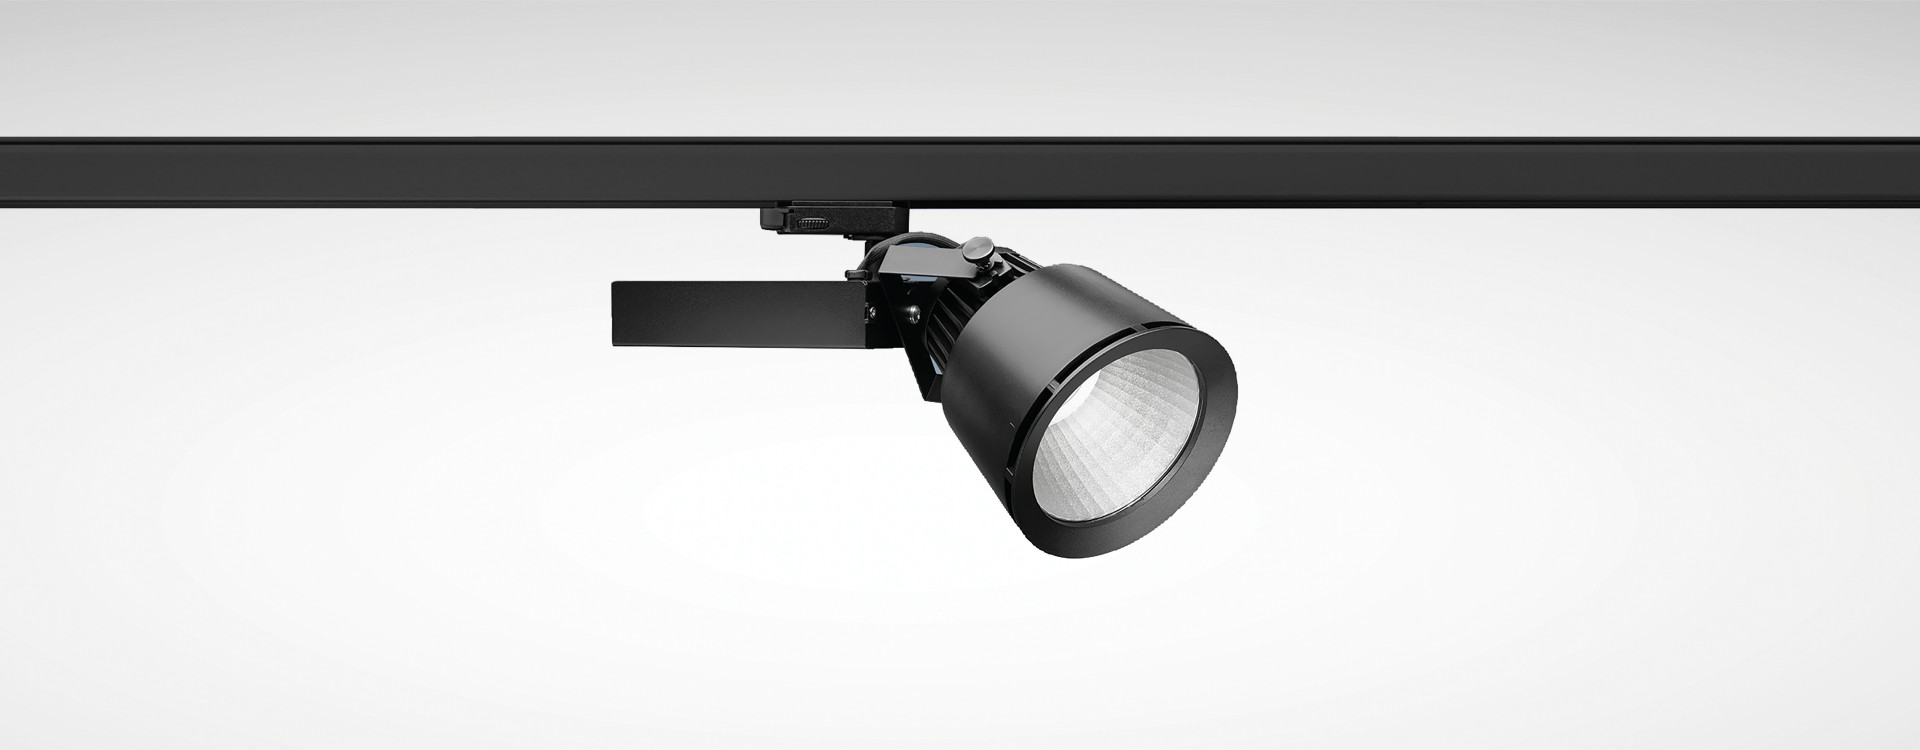 Projecteur led shopi br pour rails conducteurs for Projecteur led interieur